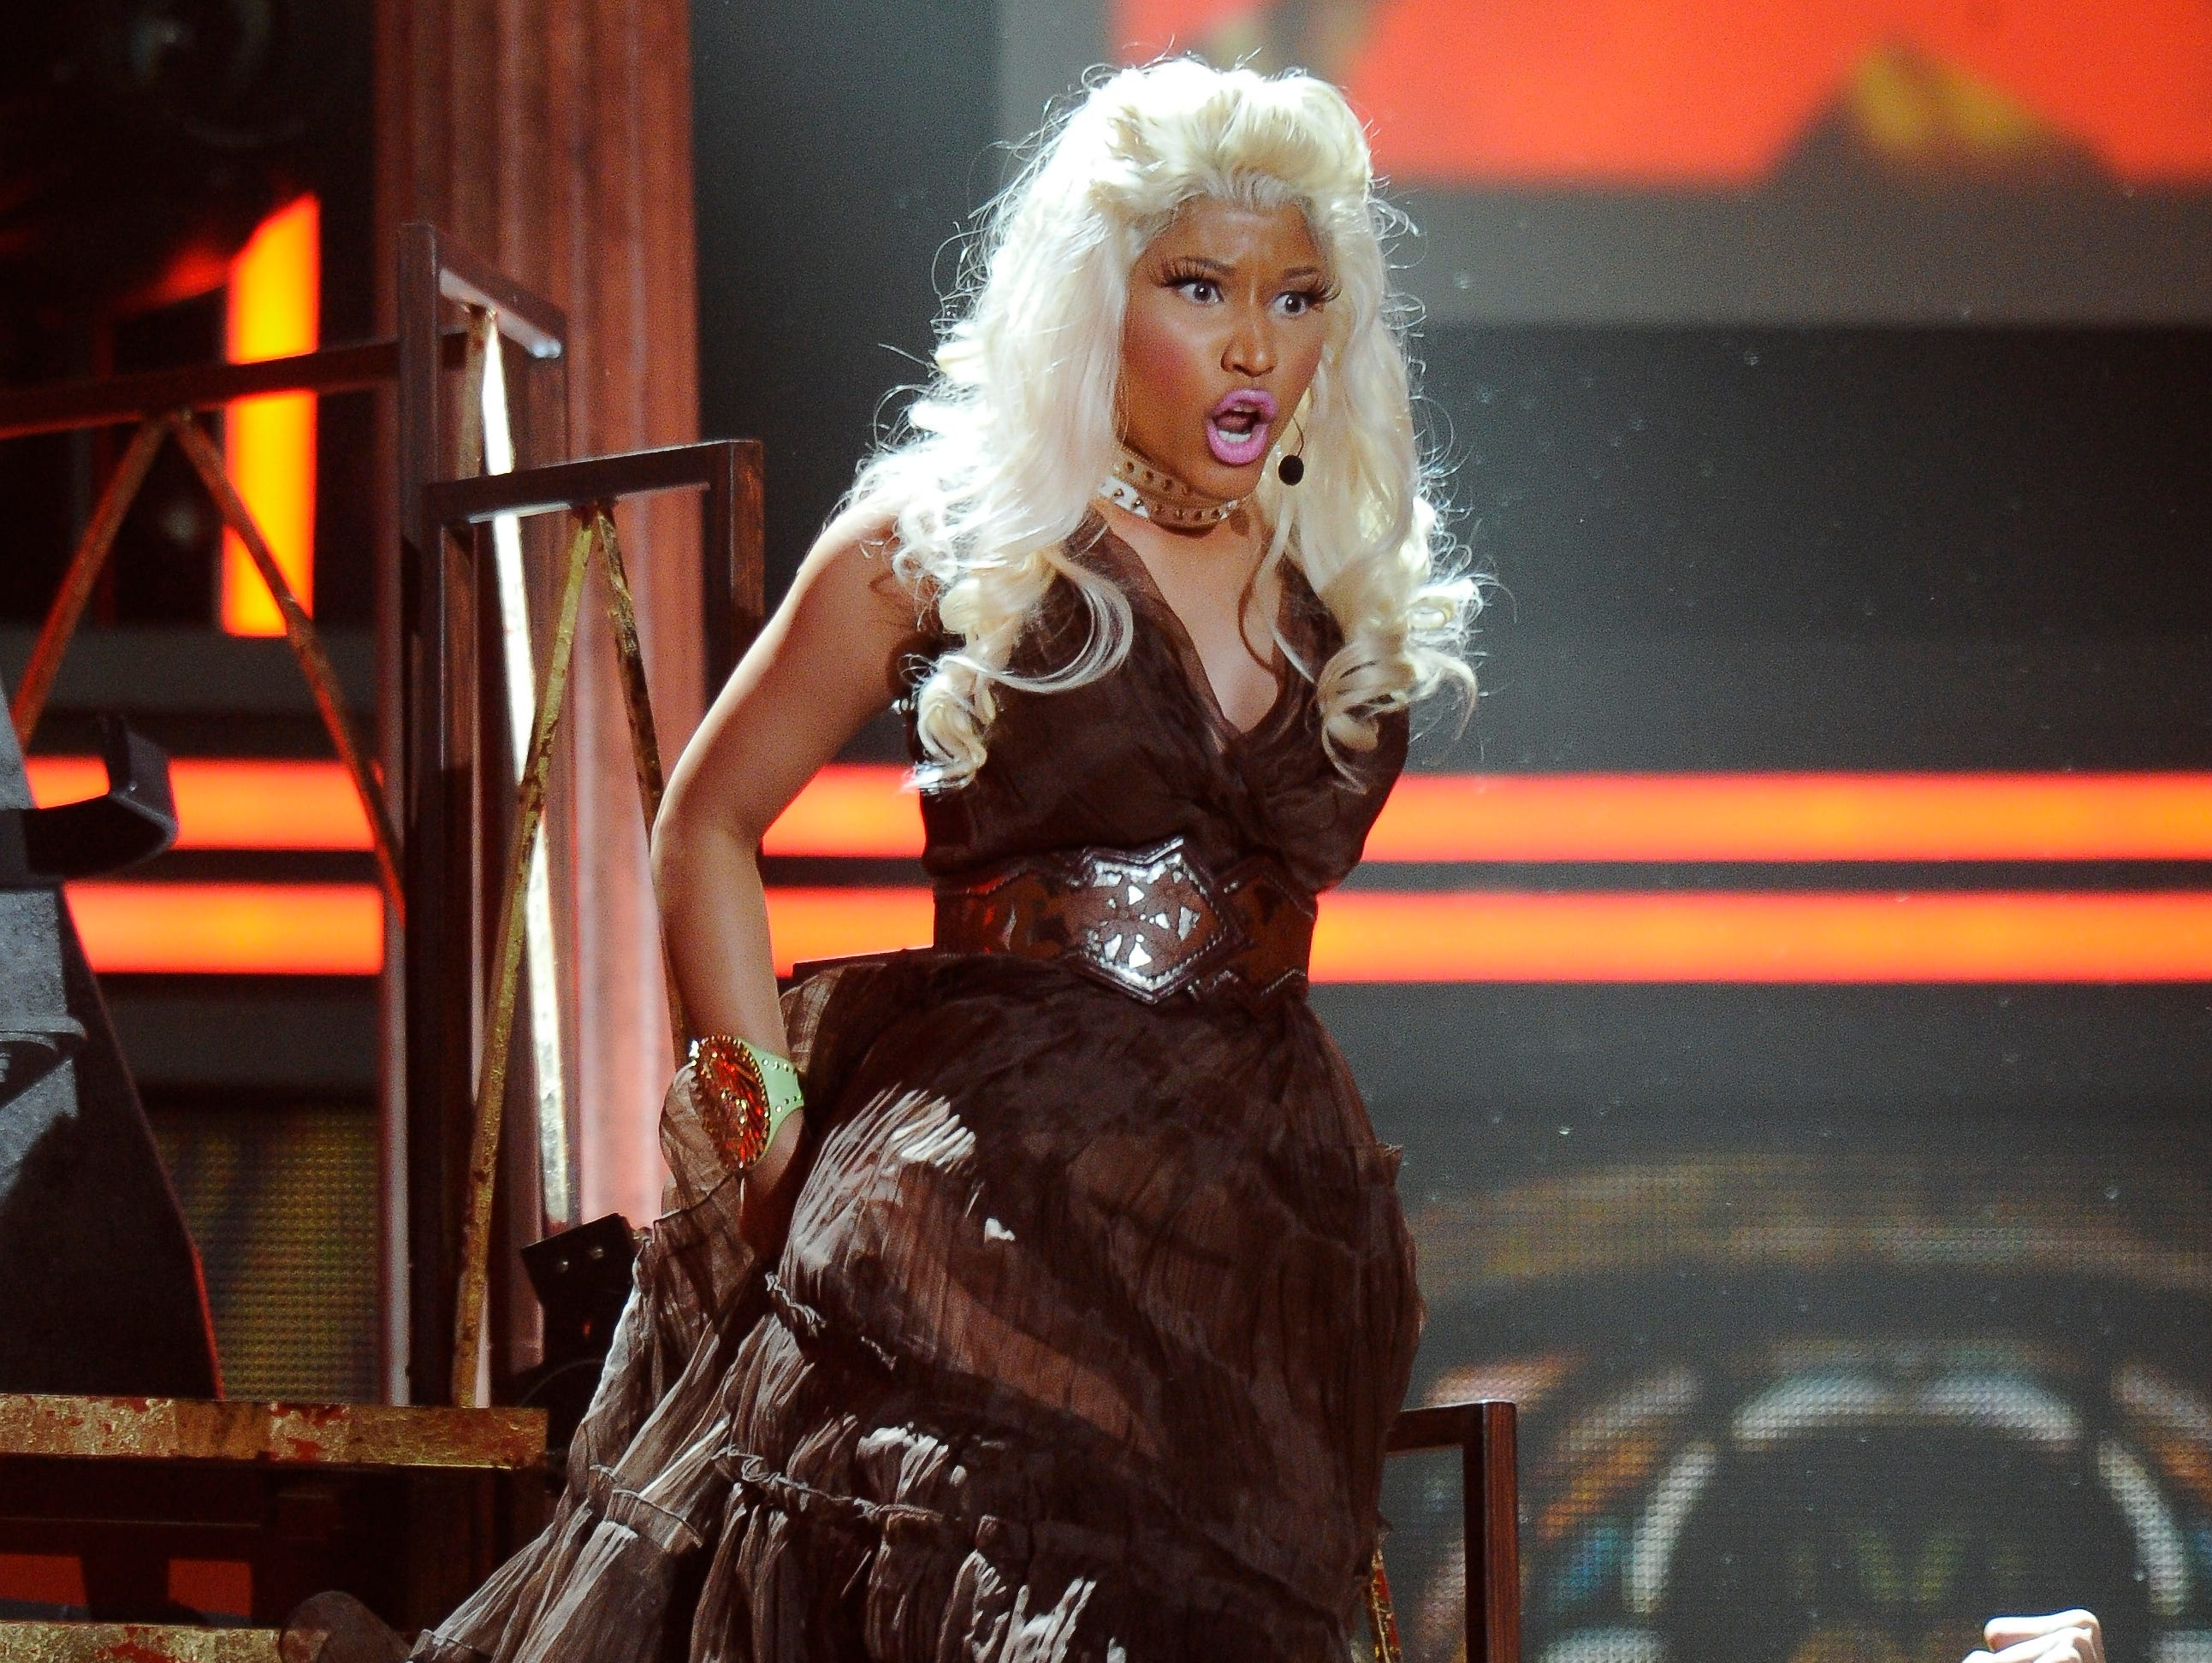 "ORG XMIT: RH 41463 2012 GRAMMYS 2/10/2012  2/12/12 11:08:21 PM --- GRAMMY AWARDS --- Los Angeles, CA: Nicki Minaj performs ""Roman Holiday"" during the Grammy Awards at Staples Center. Photo by Robert Hanashiro, USA TODAY Staff  [Via MerlinFTP Drop]"